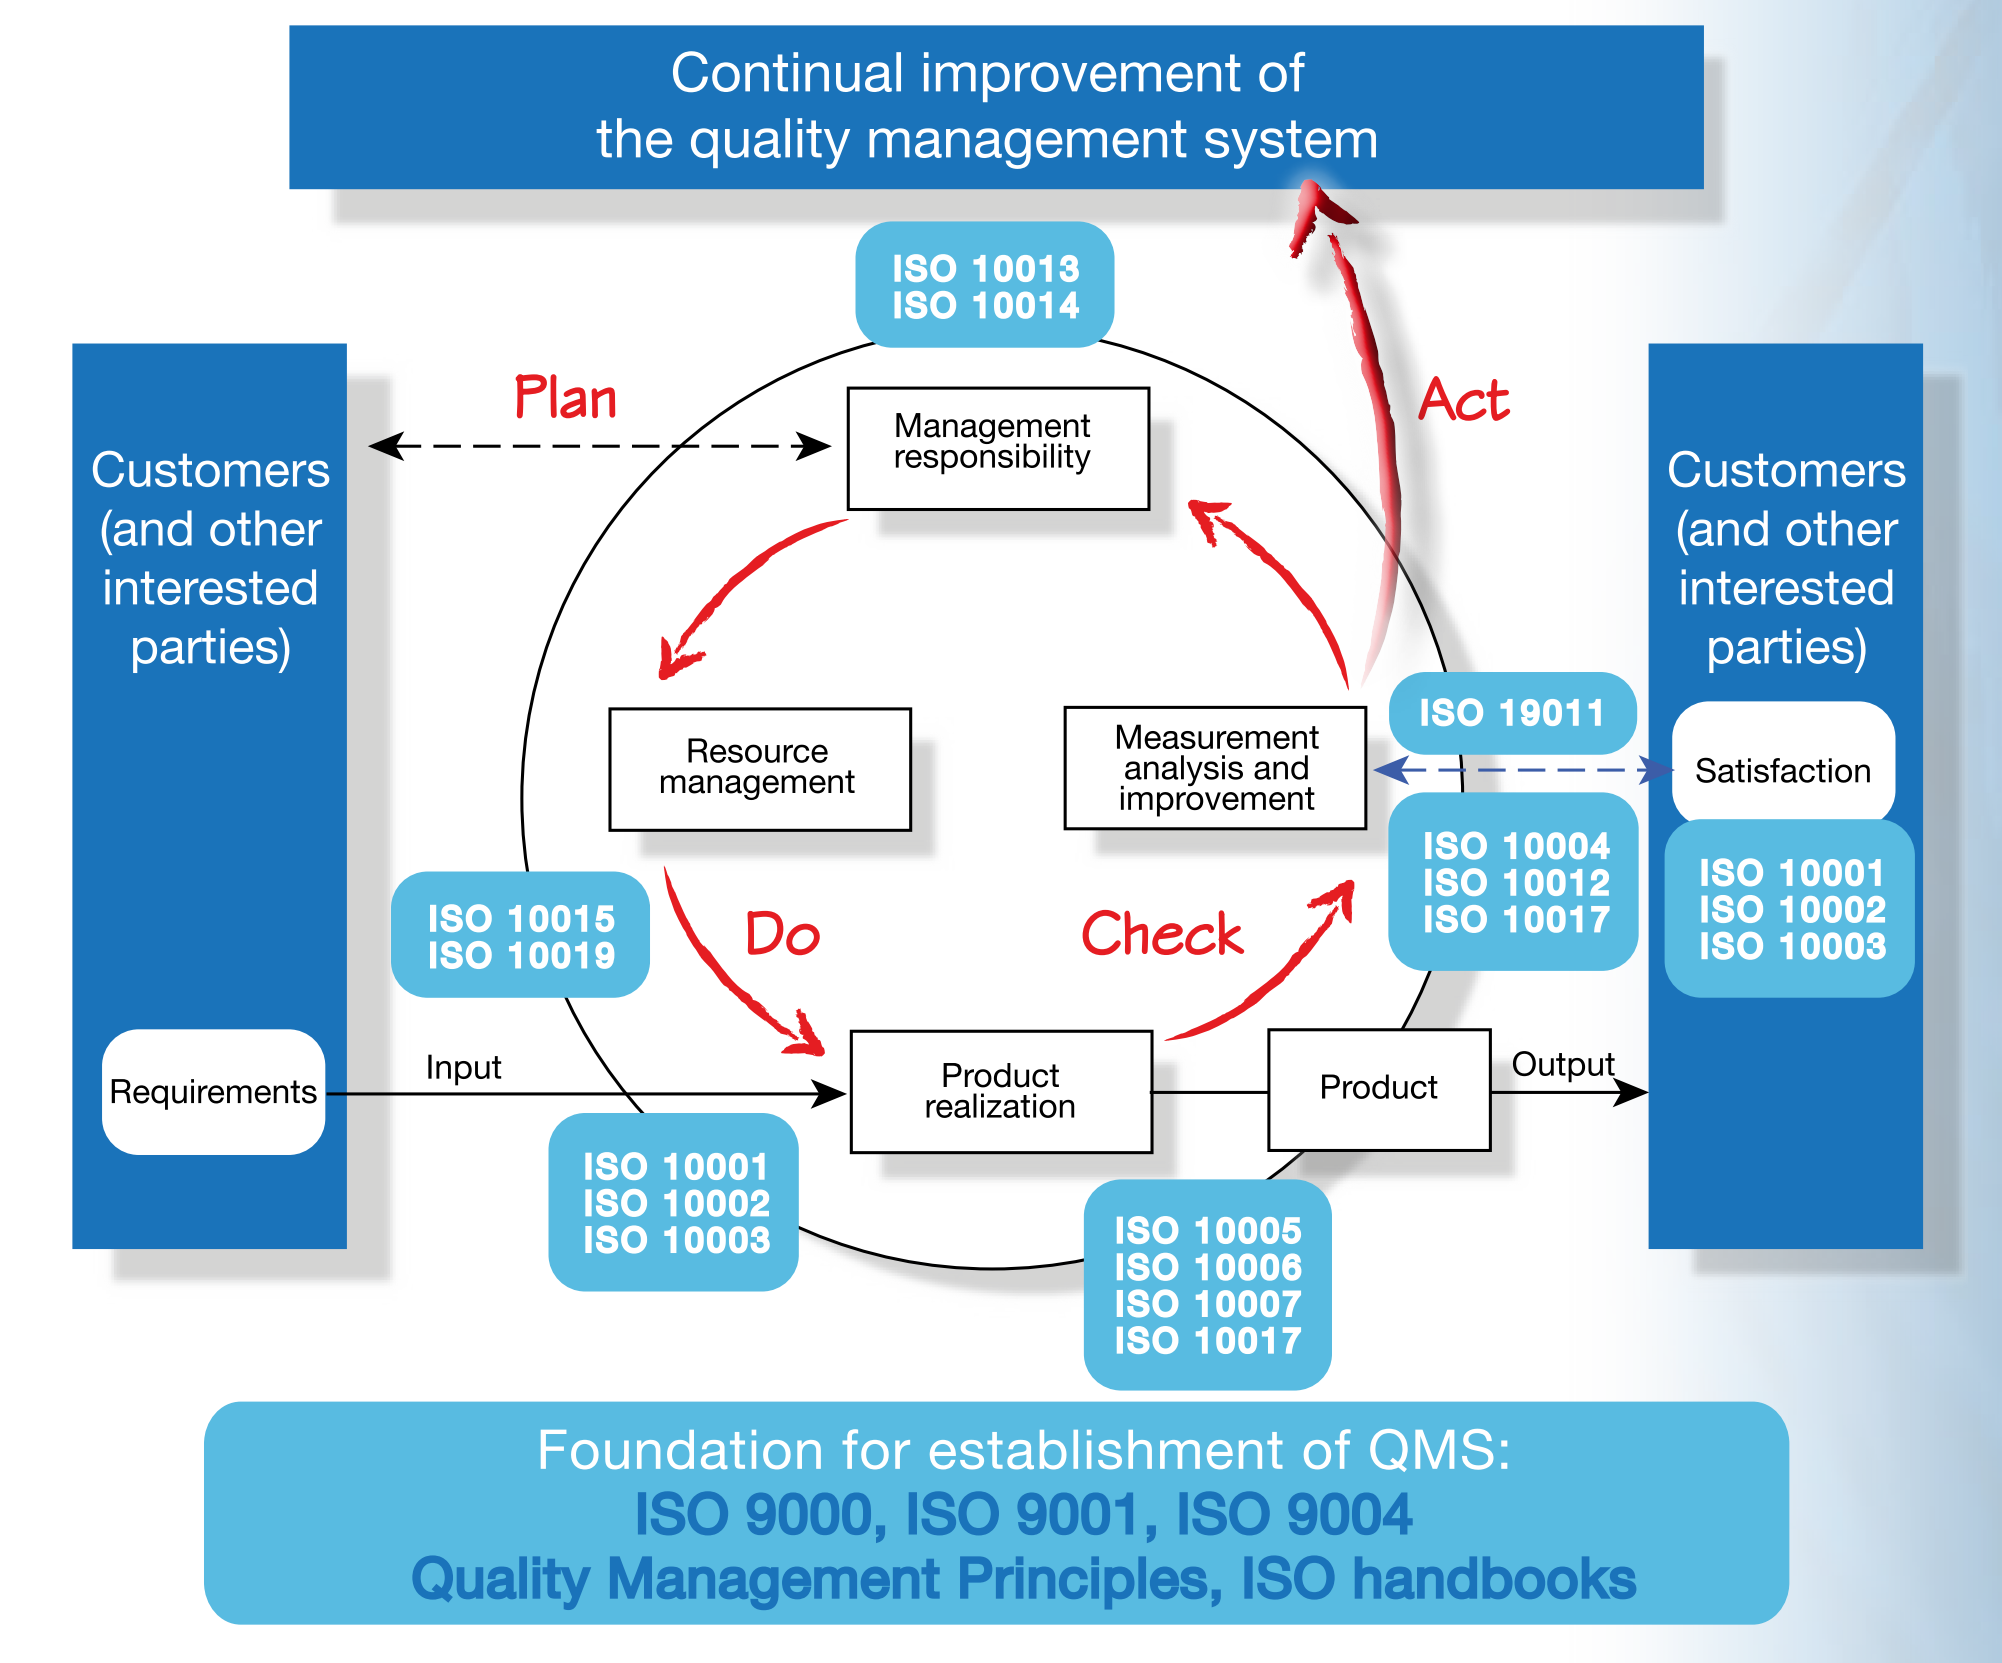 ISO 9001:2008 PDCA Standards Interaction